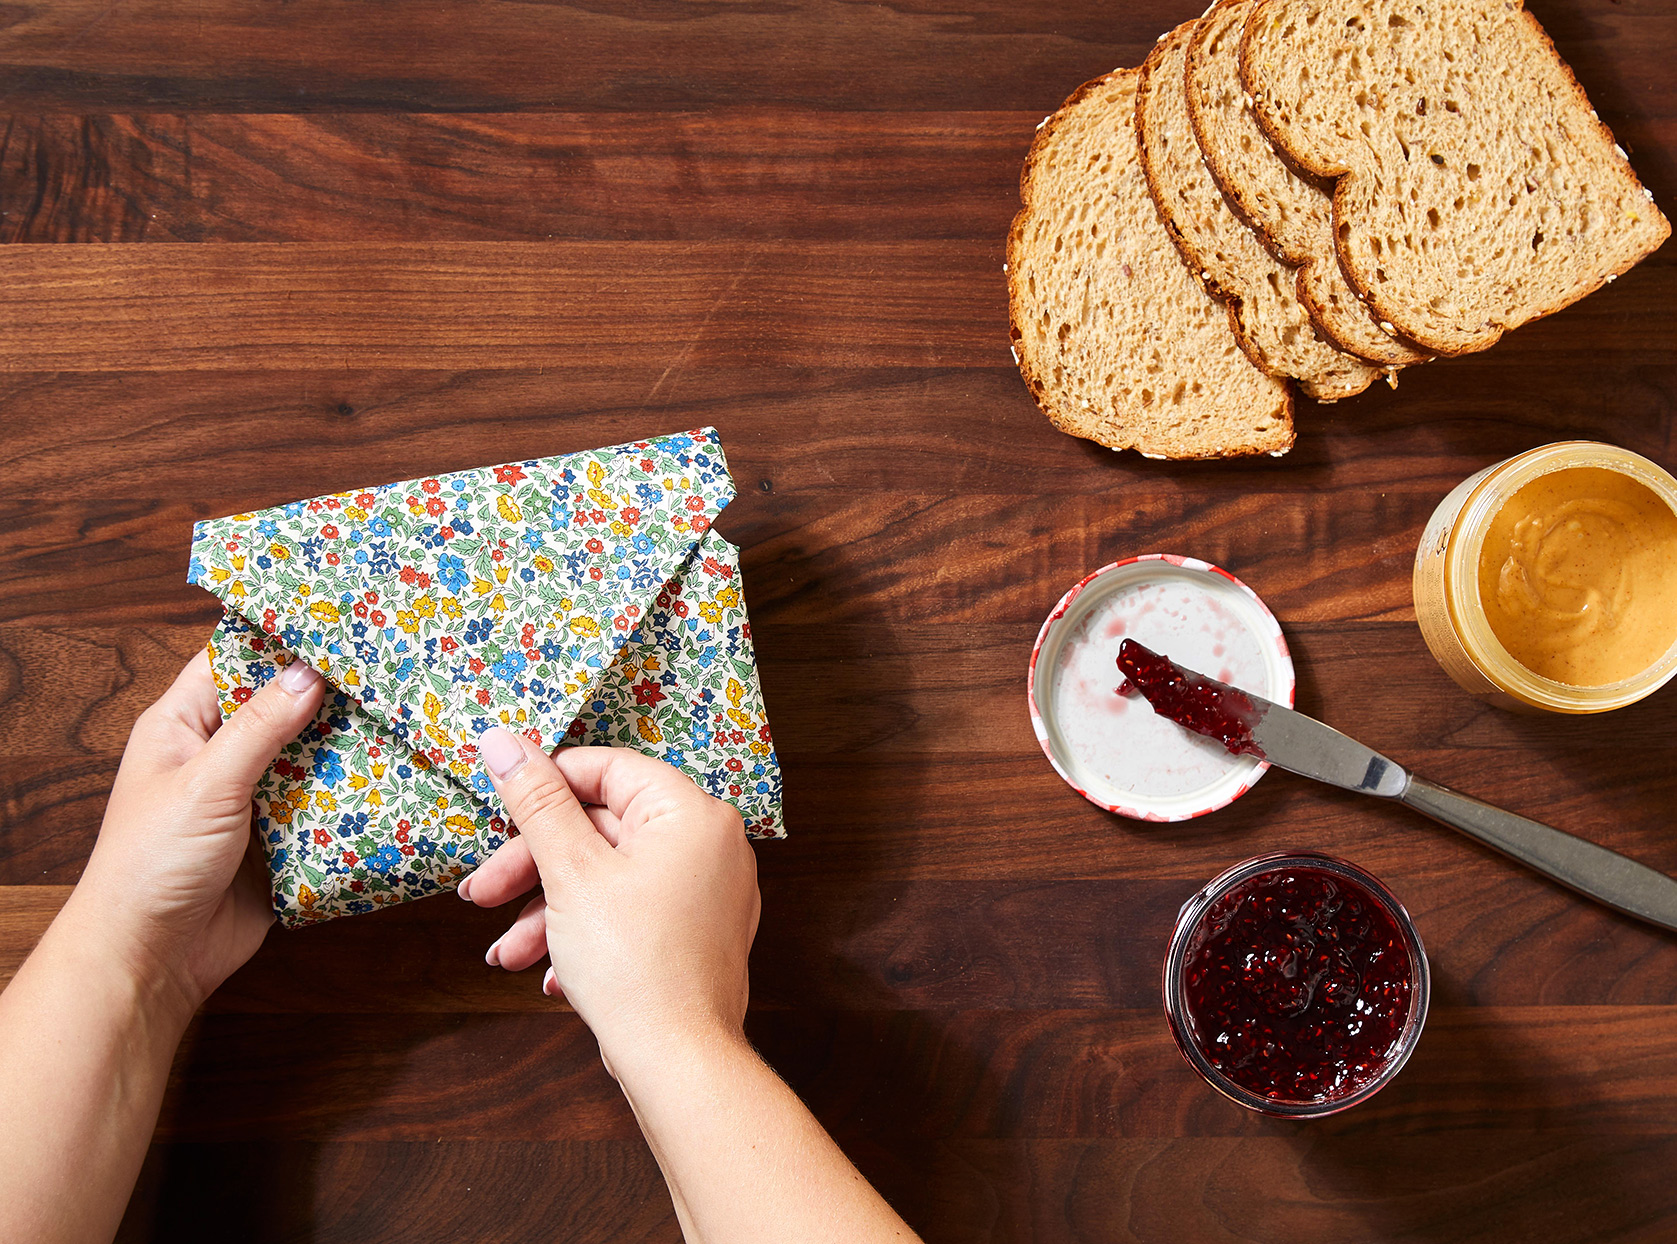 flowered sandwich pouch next to peanut butter and jelly makings